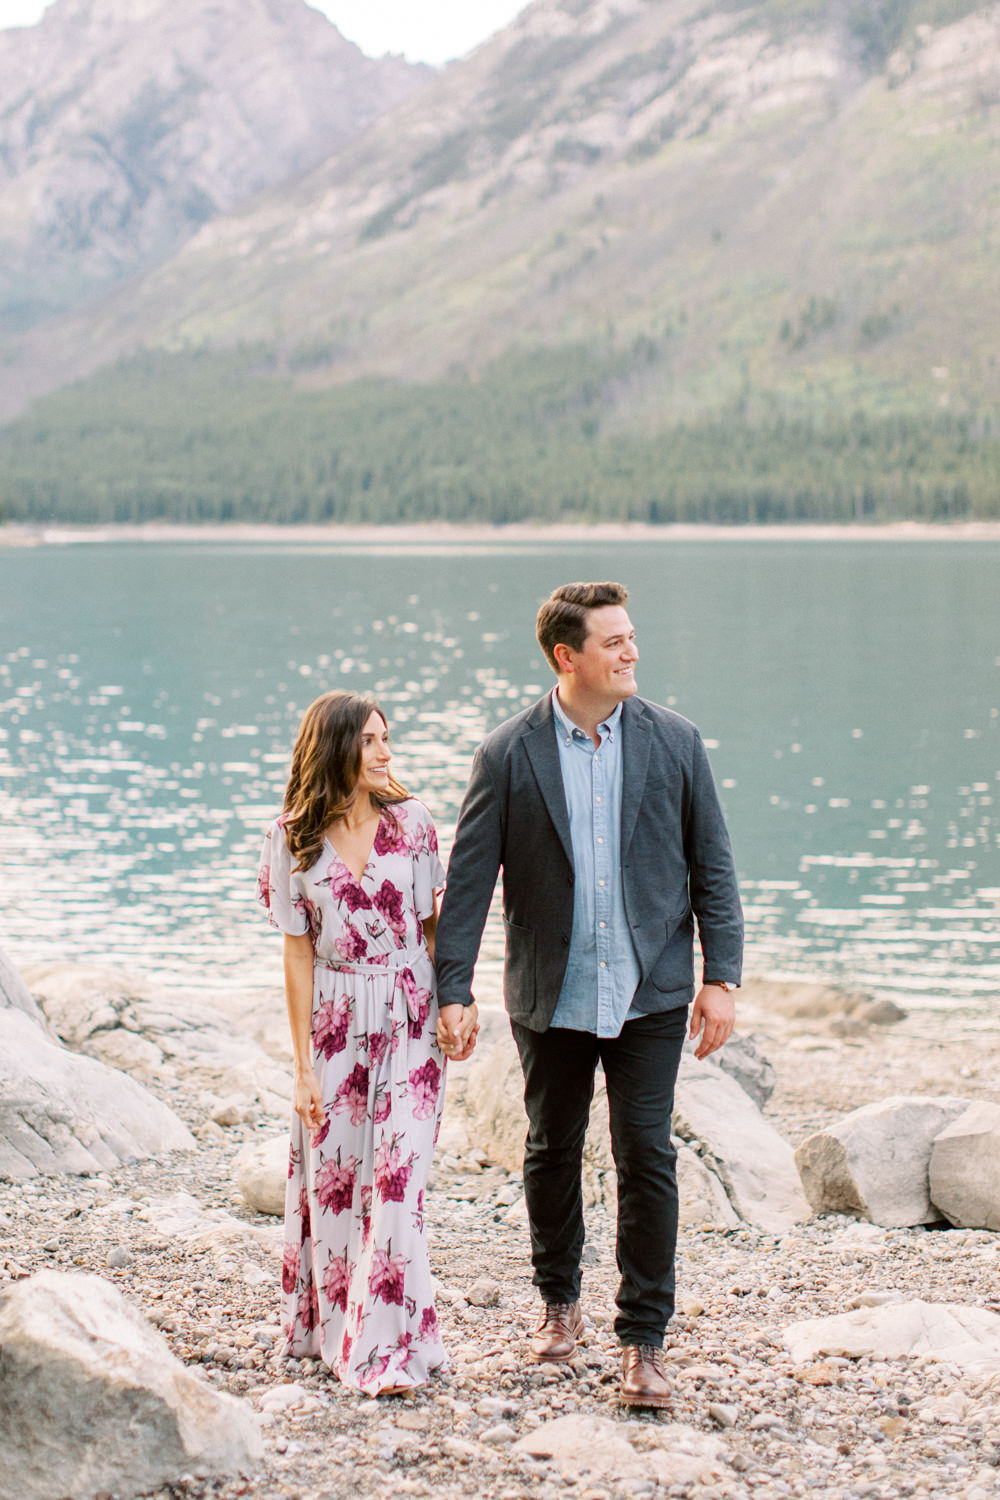 Max-and-Hayleys-Lake-Minnewanka-engagement-session-16.jpg